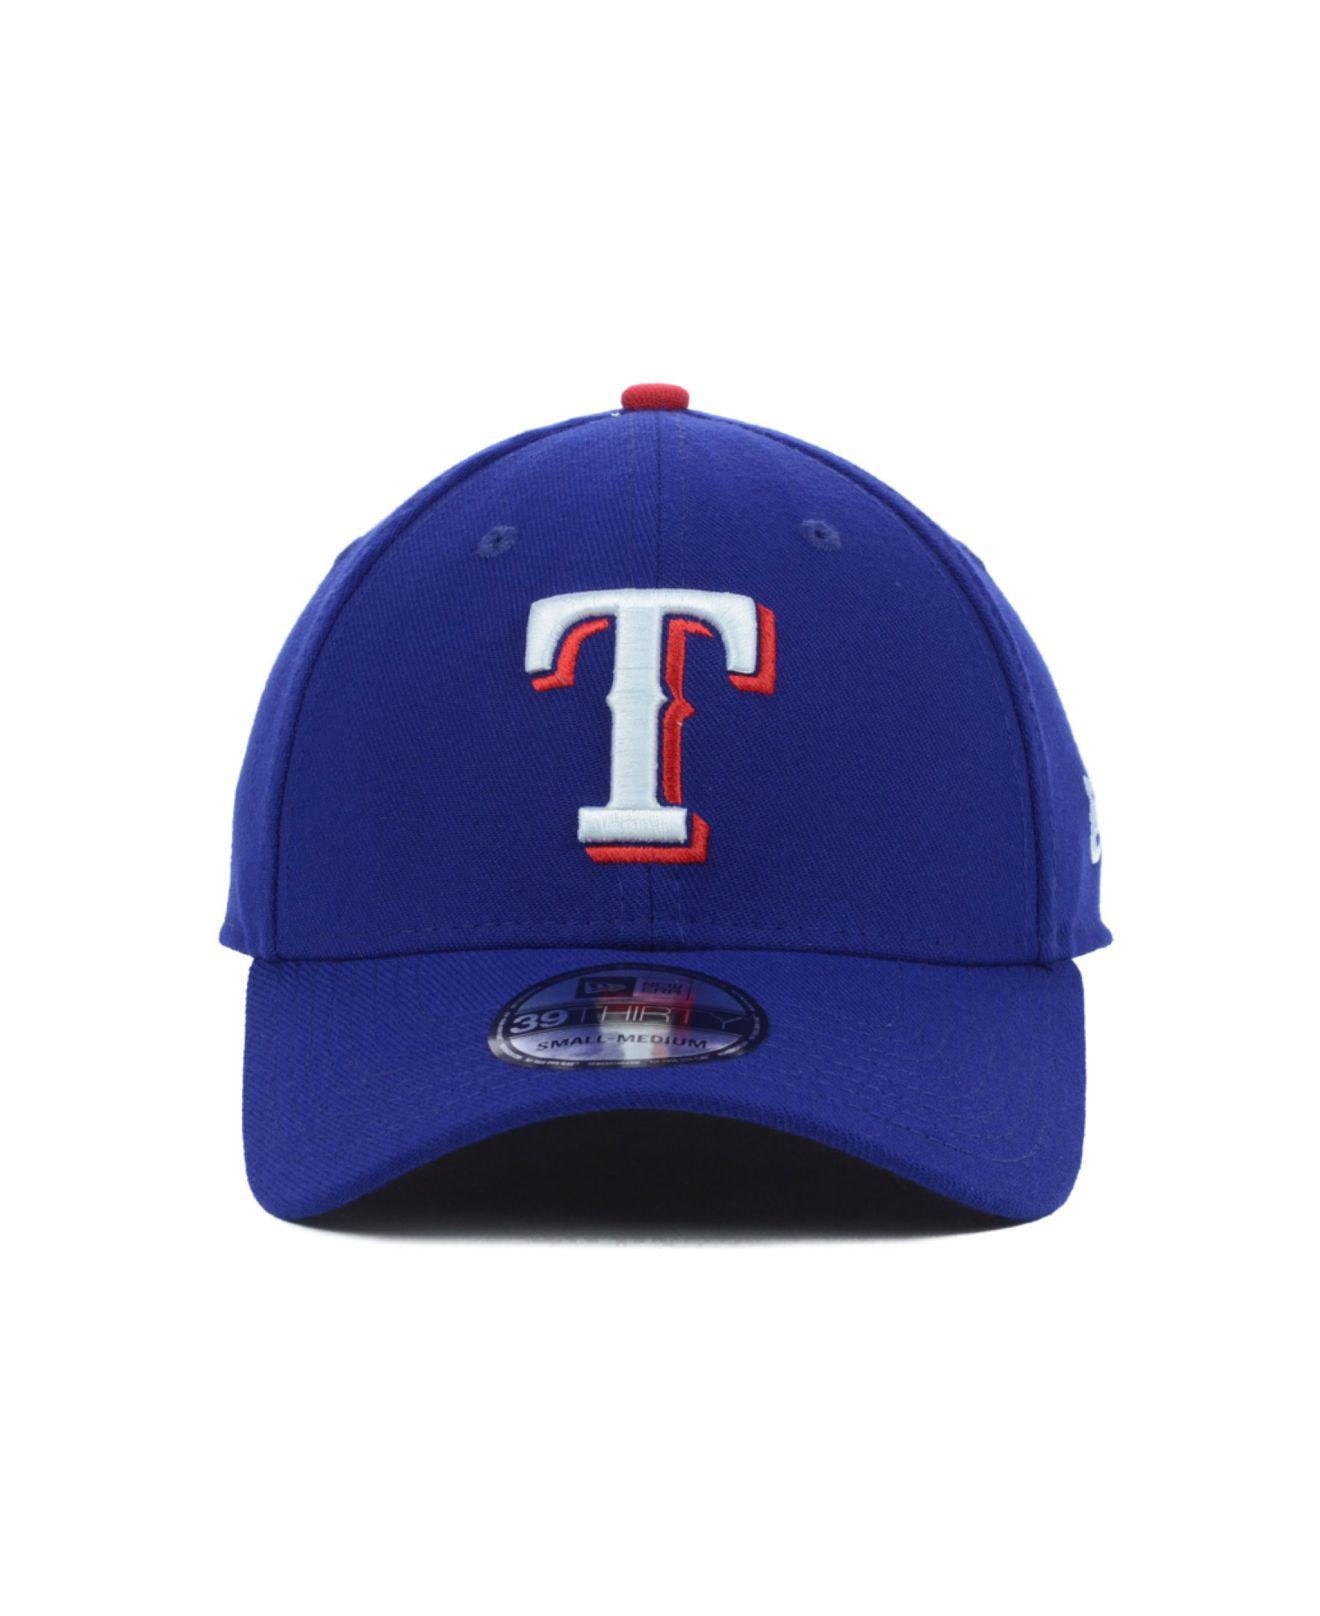 Lyst - KTZ Texas Rangers Mlb Team Classic 39thirty Cap in Blue for Men cb6e00d0576e